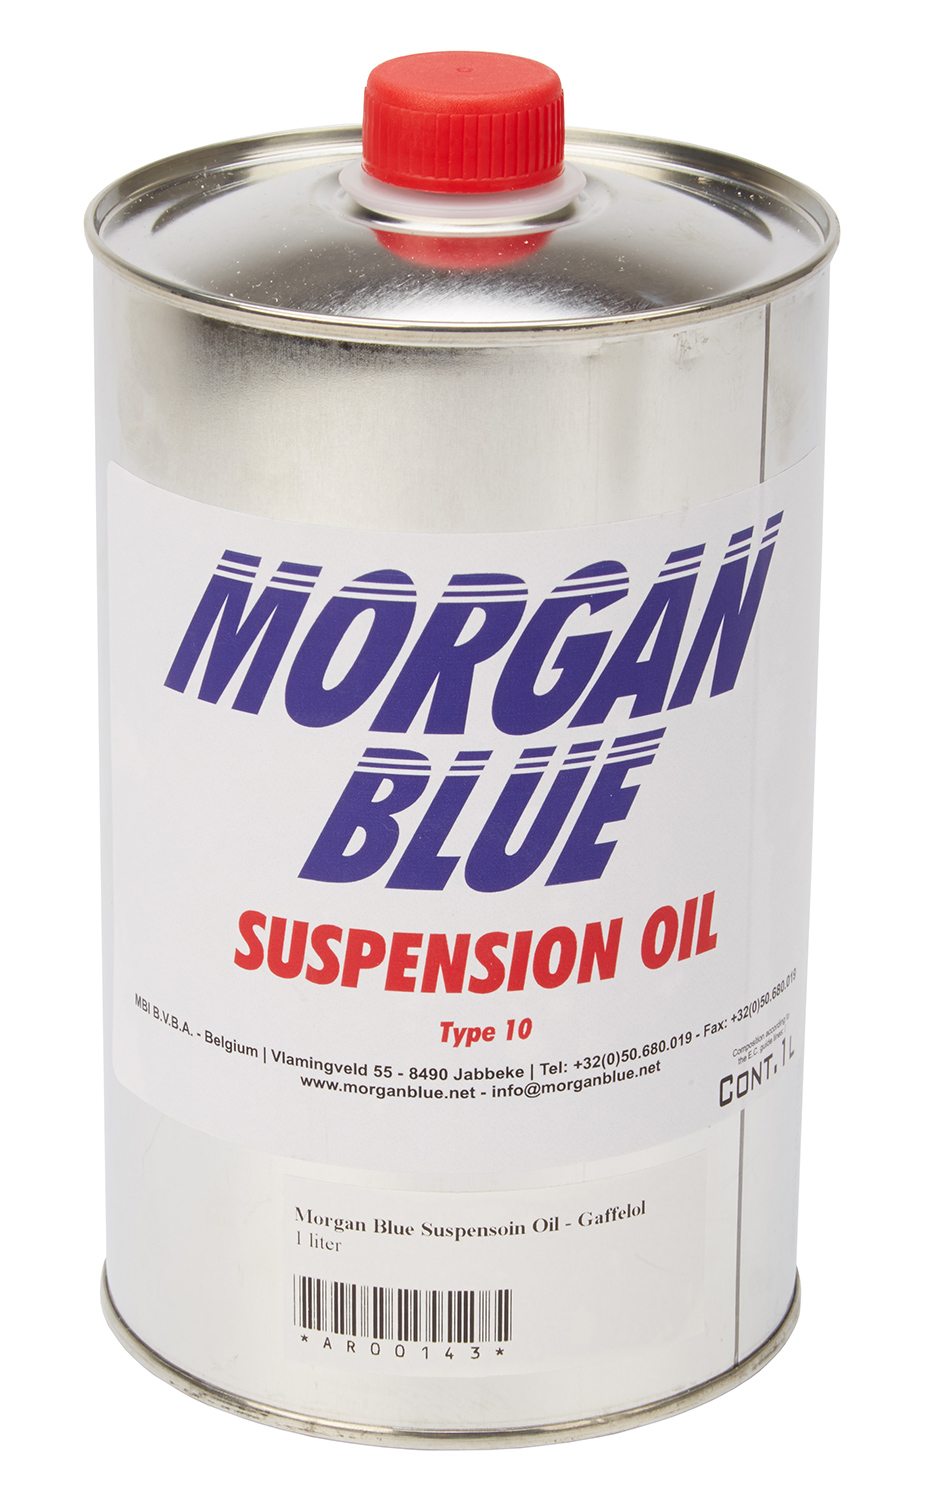 Morgan Blue Suspensoin Oil - Gaffelolie WT10 - 1 liter | polish_and_lubricant_component